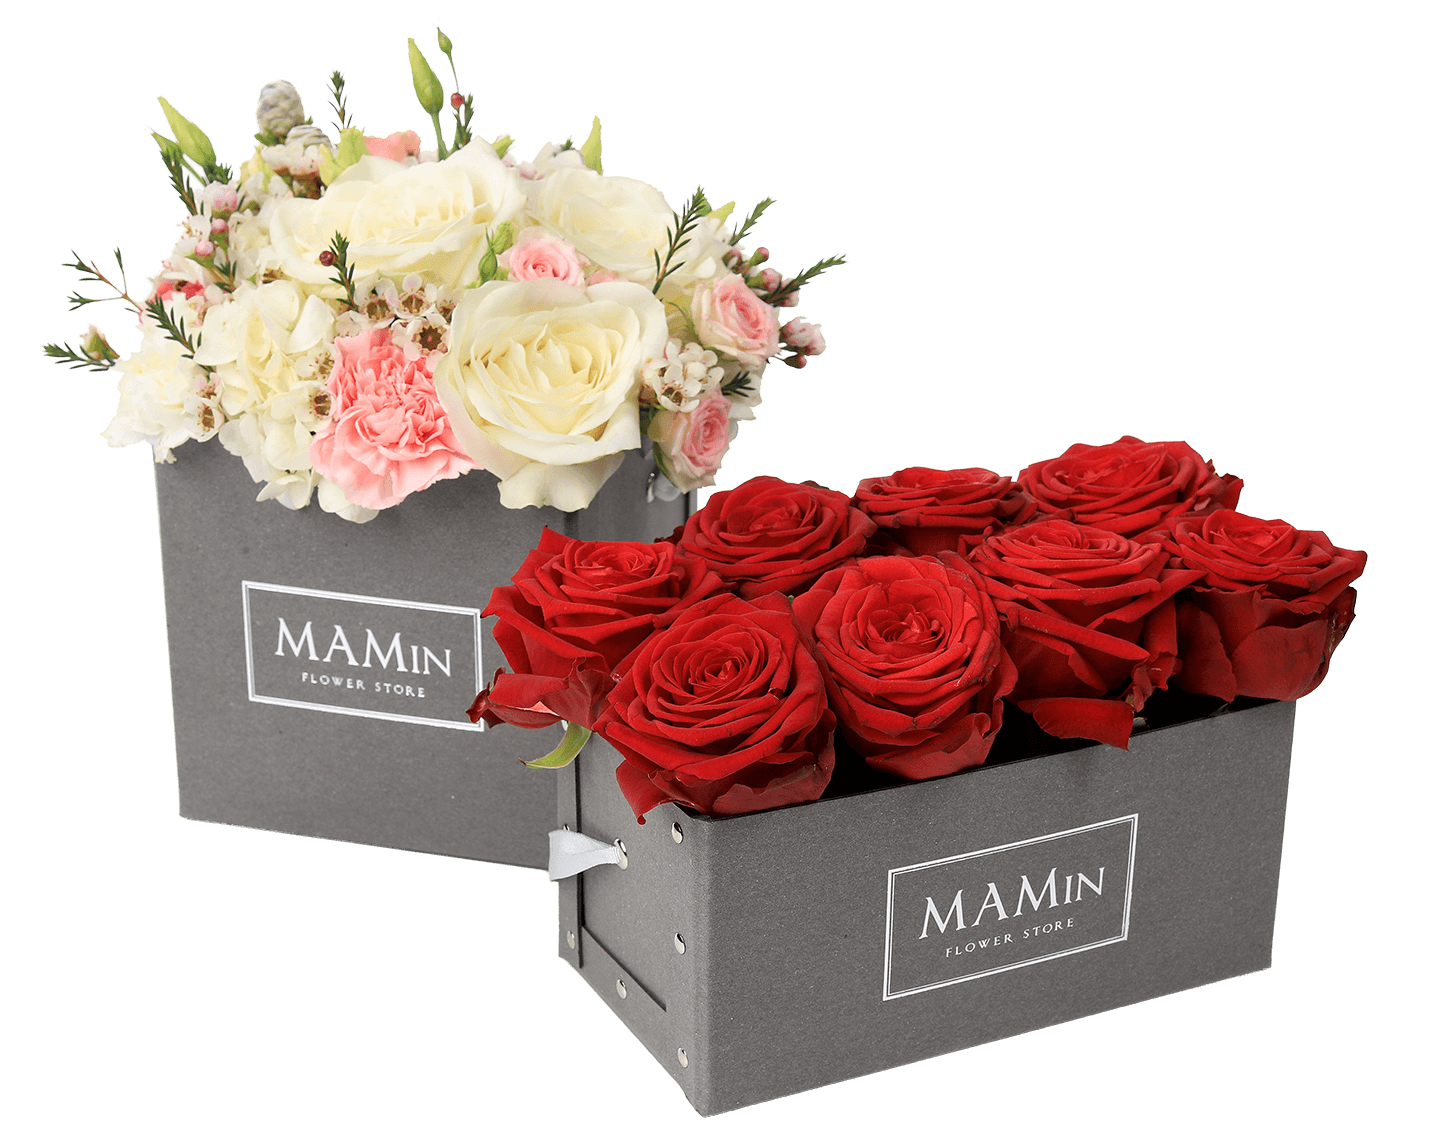 Flower box png. Square riveted premium packaging